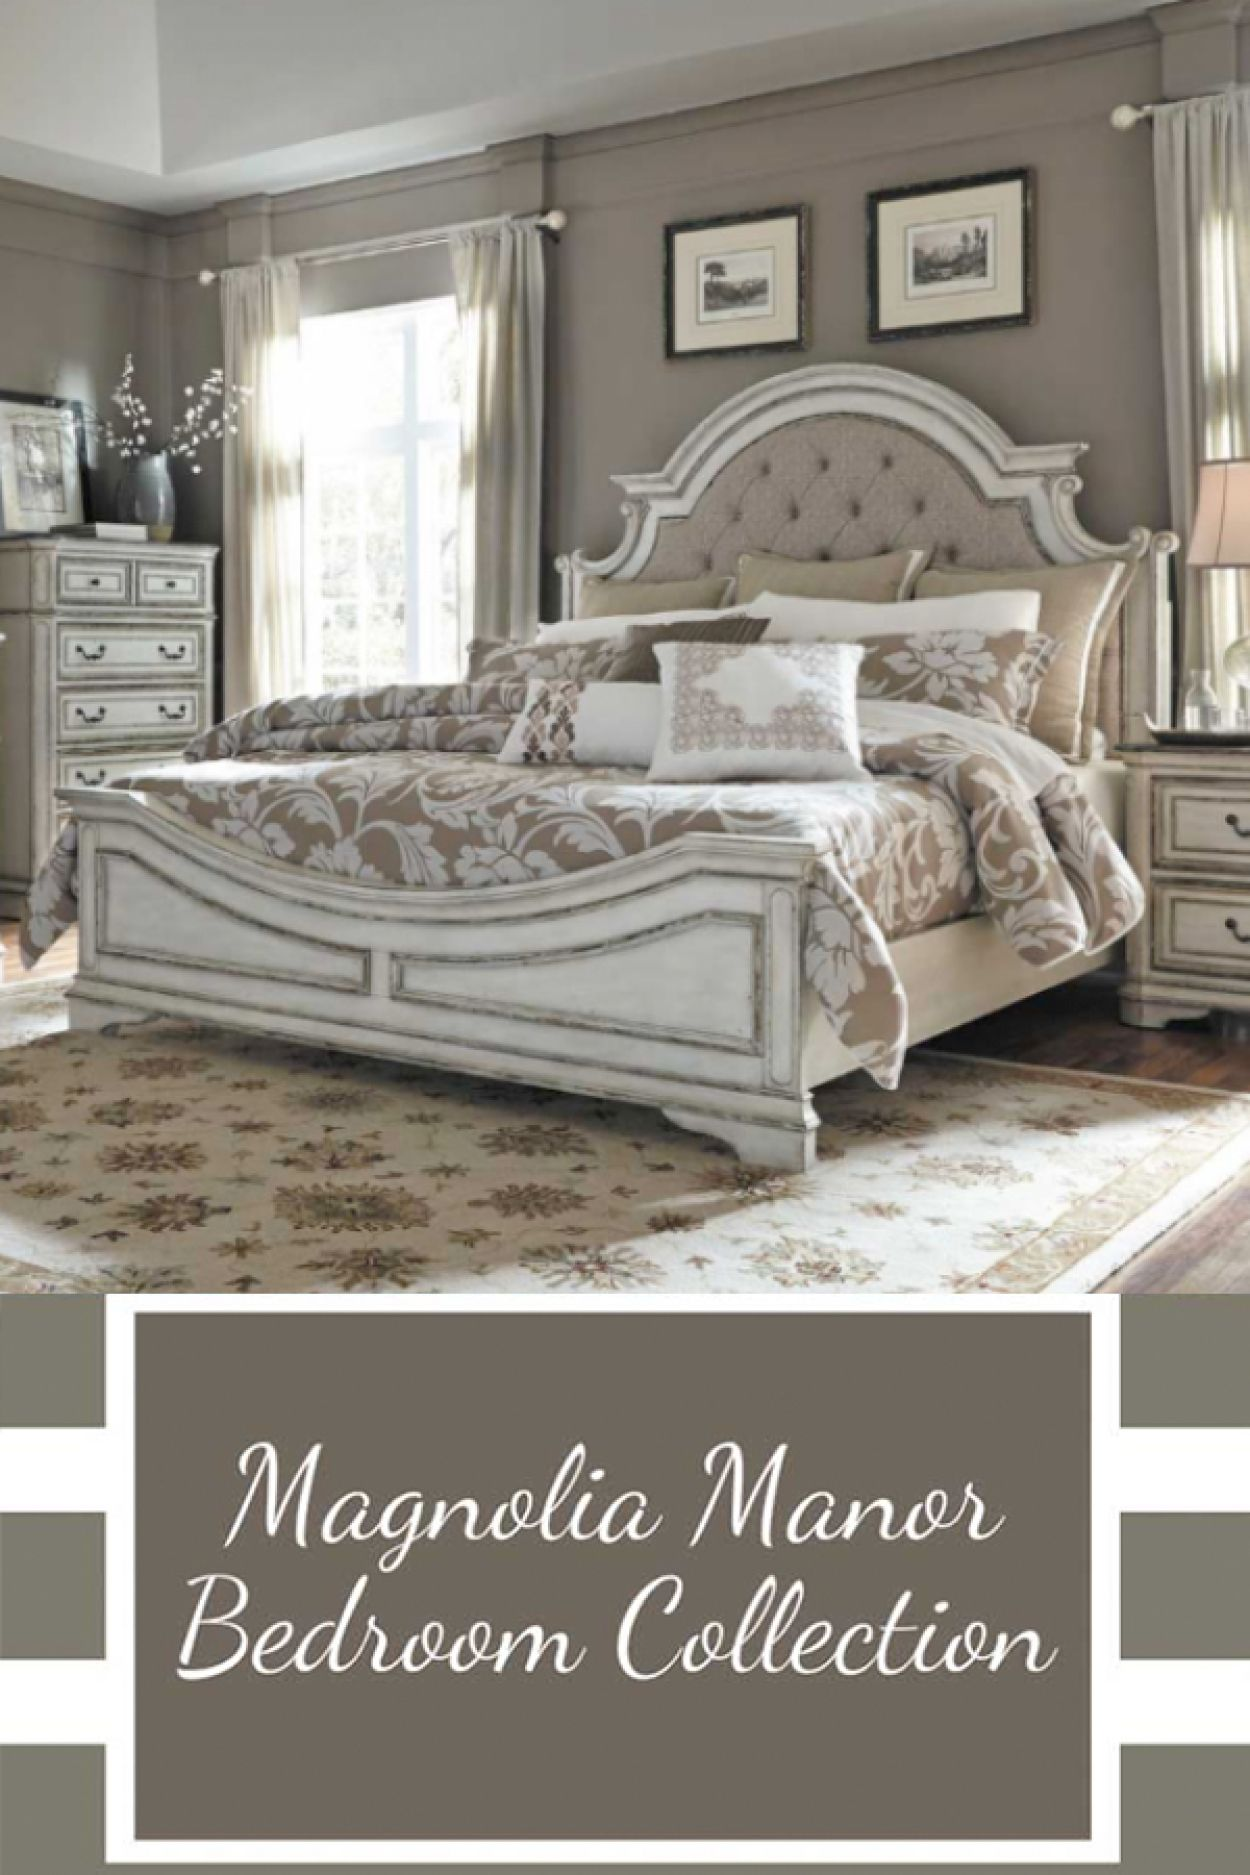 Magnolia Manor 5 Piece Bedroom Set Country Bedroom French Country Bedrooms French Country Decorating